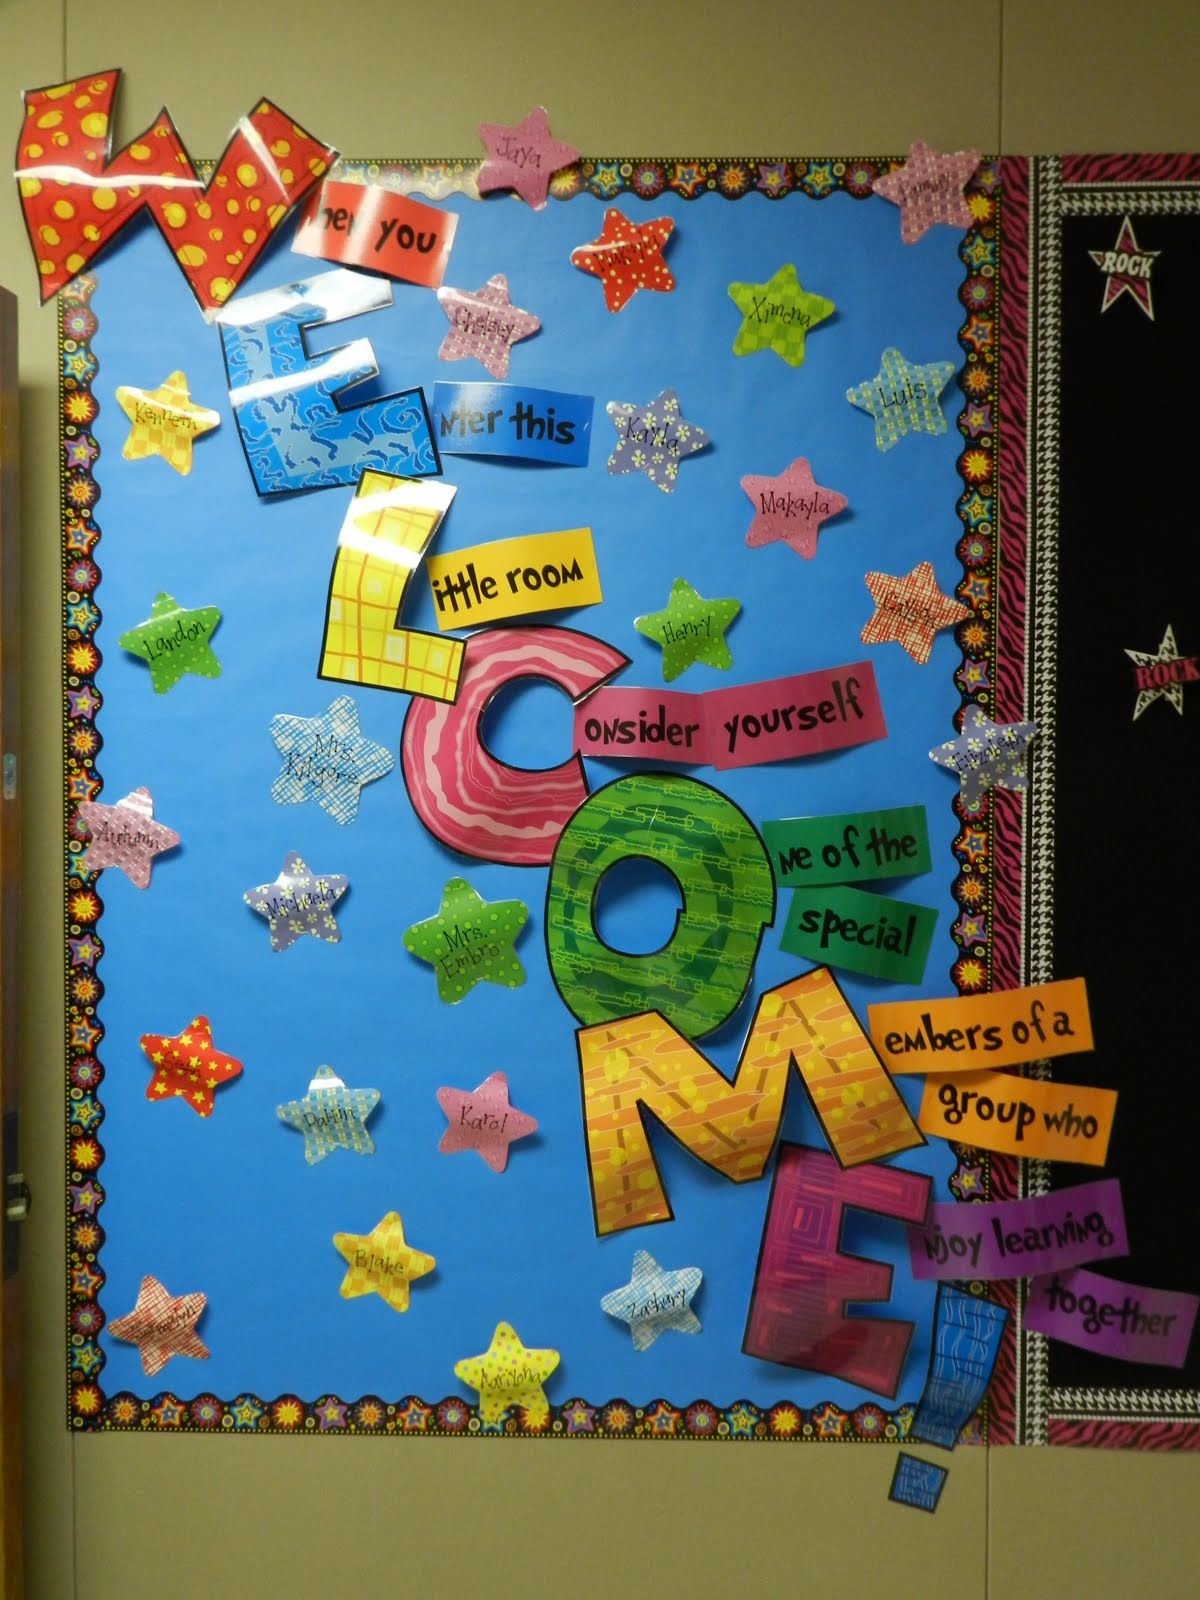 Classroom board decor rules displays welcome back to school also pin by jane wainscott on bulletin boards pinterest rh